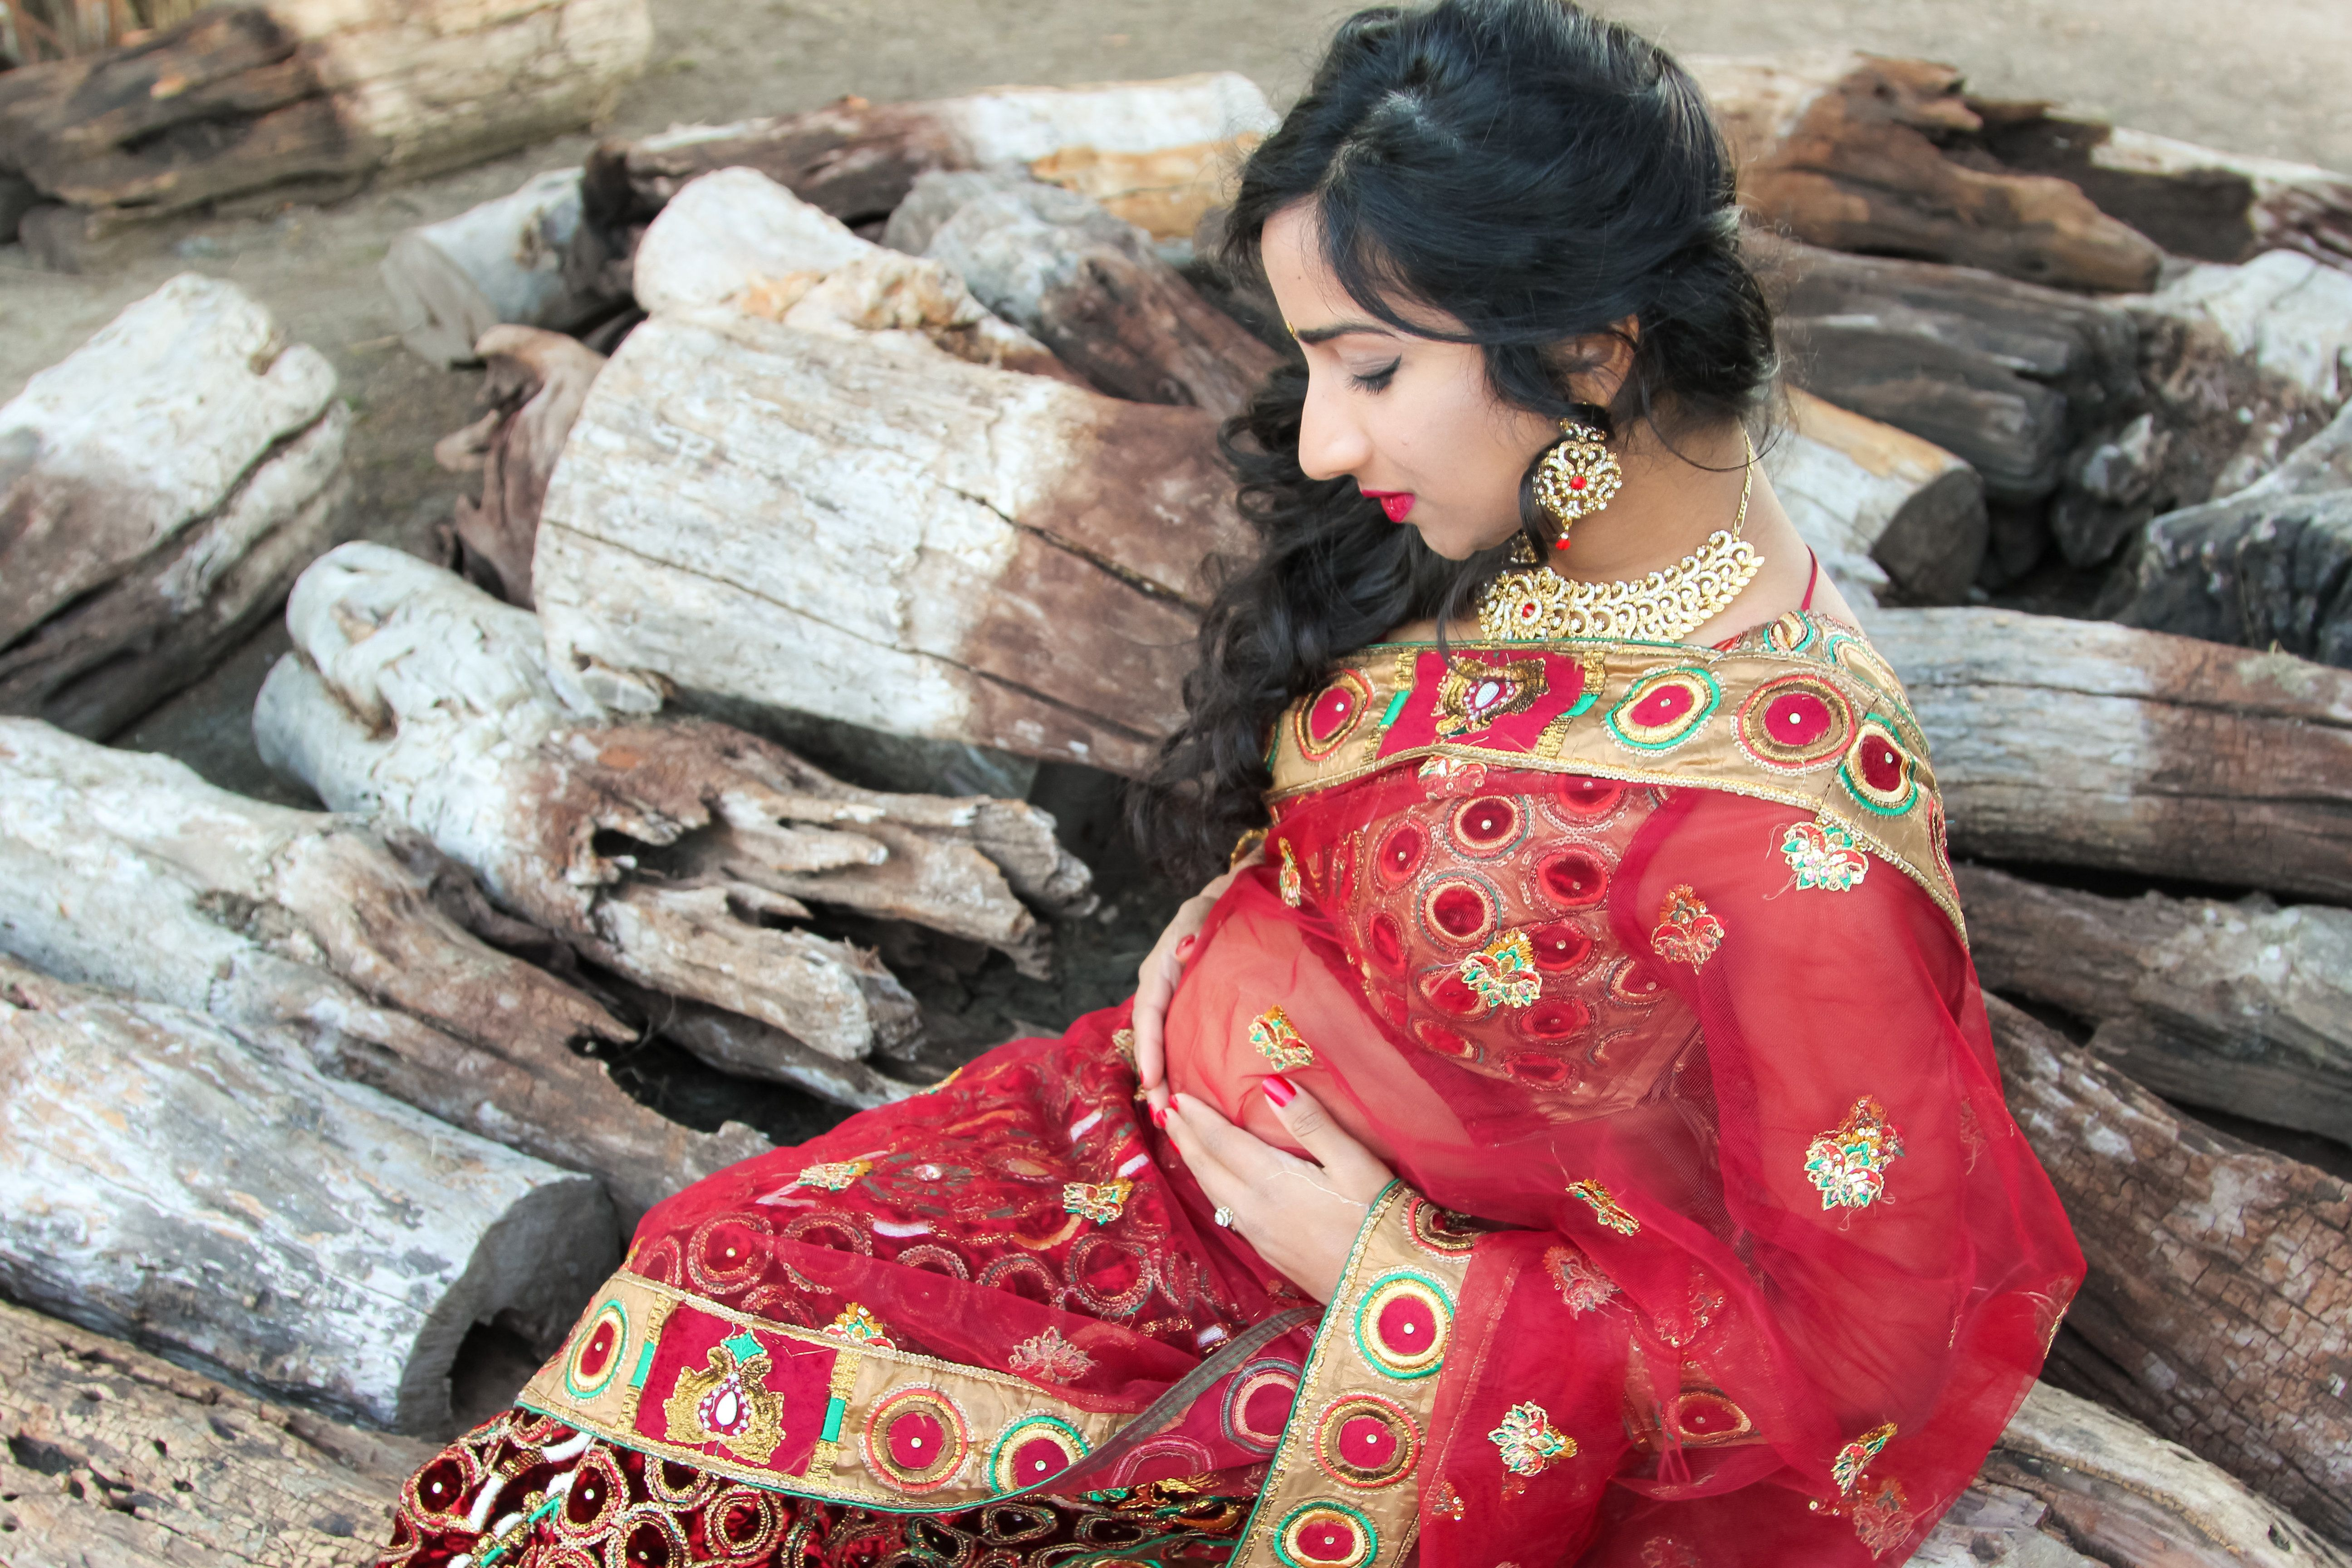 Sherine Valverde is an Indian-American mom-to-be from San Antonio.